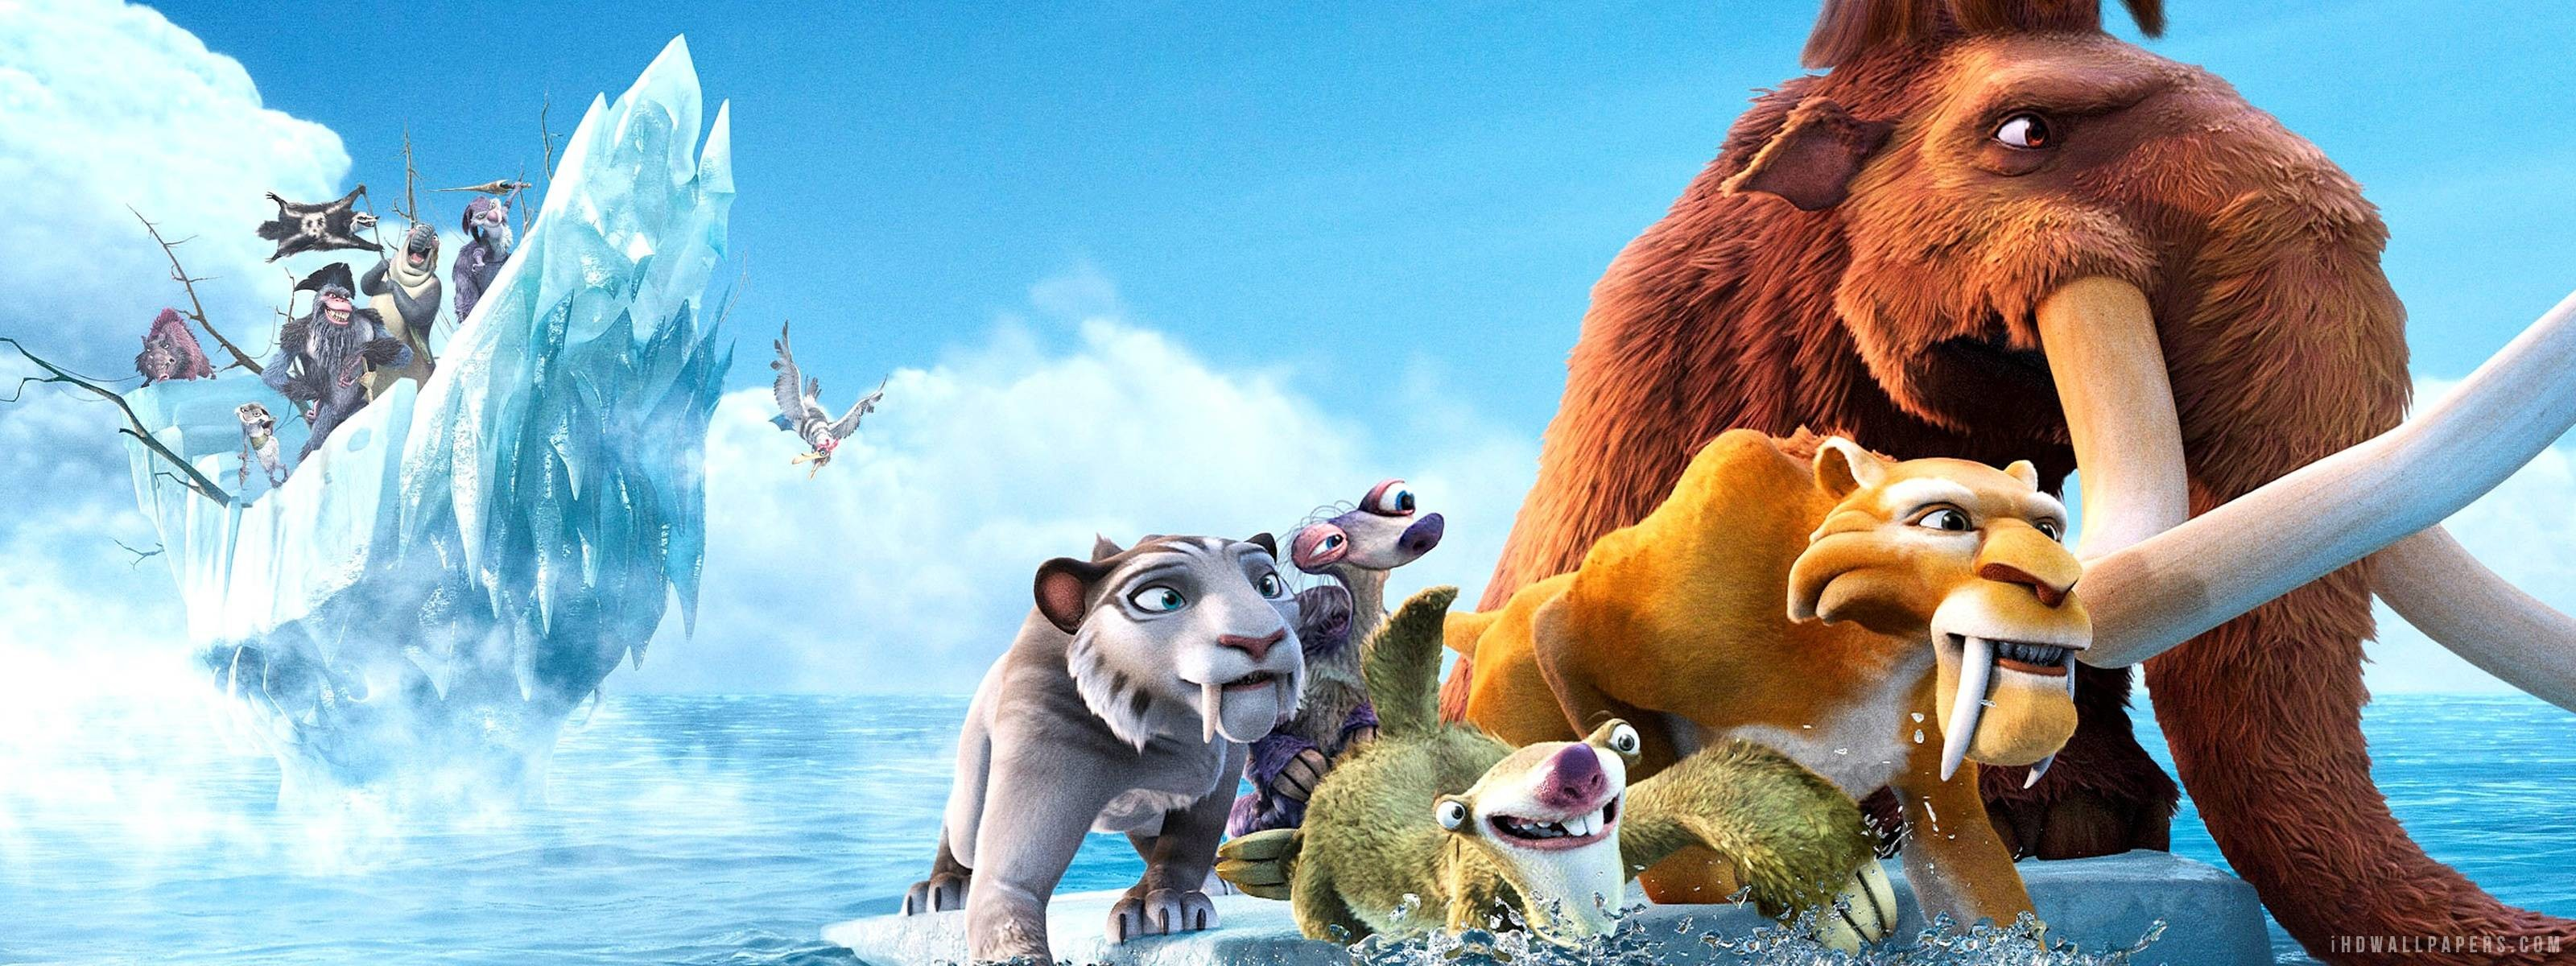 3200x1200 Images For > Ice Age Wallpaper Hd